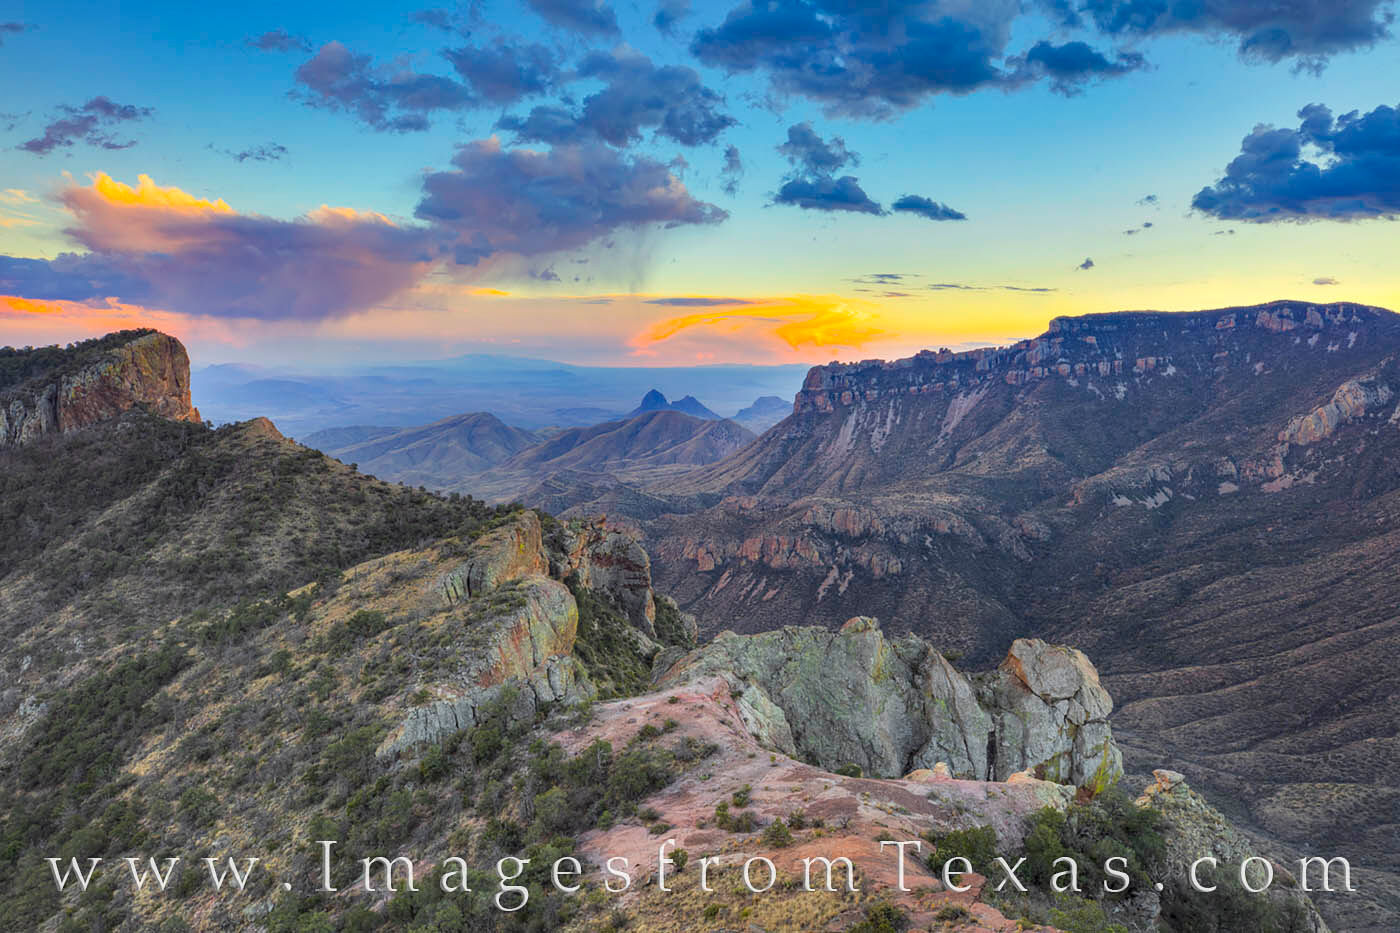 big bend national park, lost mine trail, juniper canyon, chisos mountains, texas sunset, texas landscapes, west texas, photo